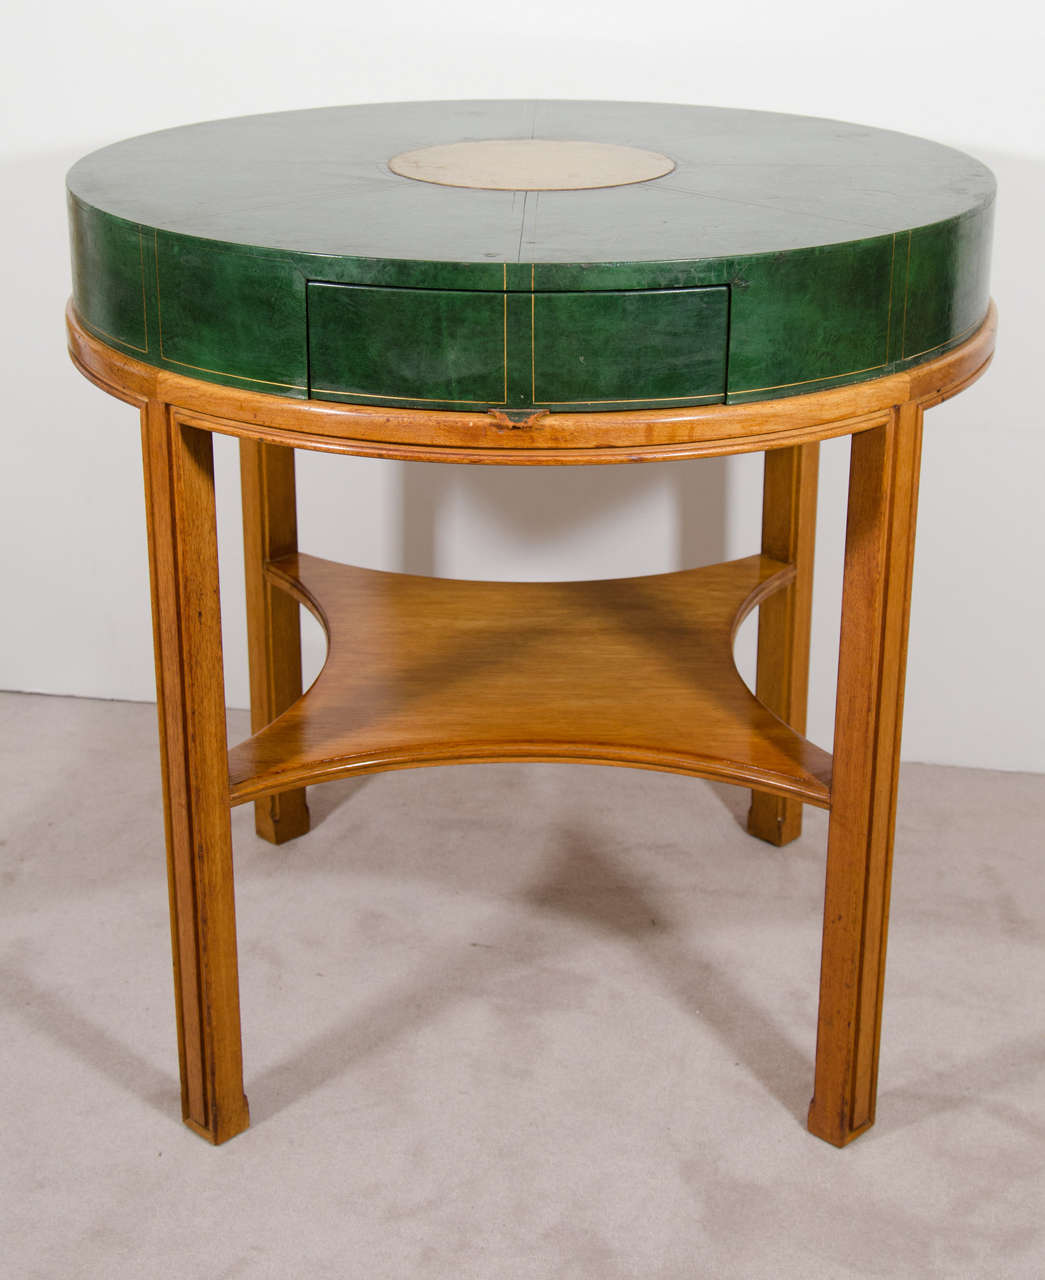 Midcentury Tommi Parzinger For Charak Modern, Round Leather Game Table 2